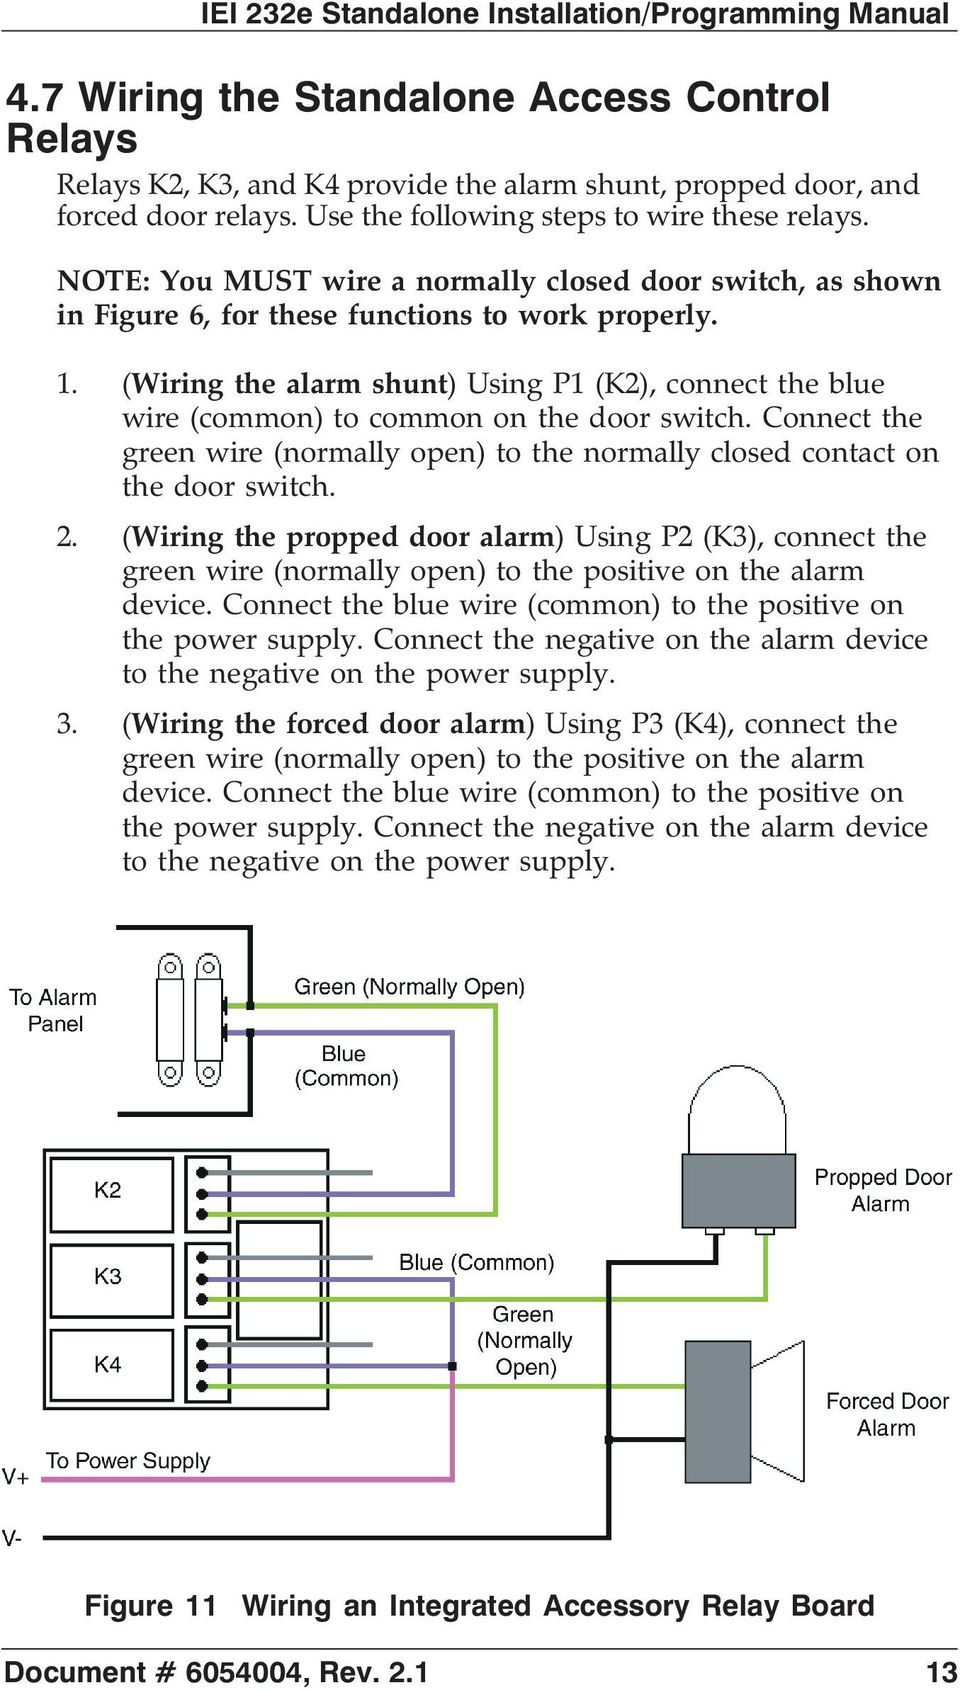 Control Relay Wiring Iei 232e Standalone Tm Keypad Installation Programming Manual Pdf The Alarm Shunt Using P1 K2 Connect Blue Wire